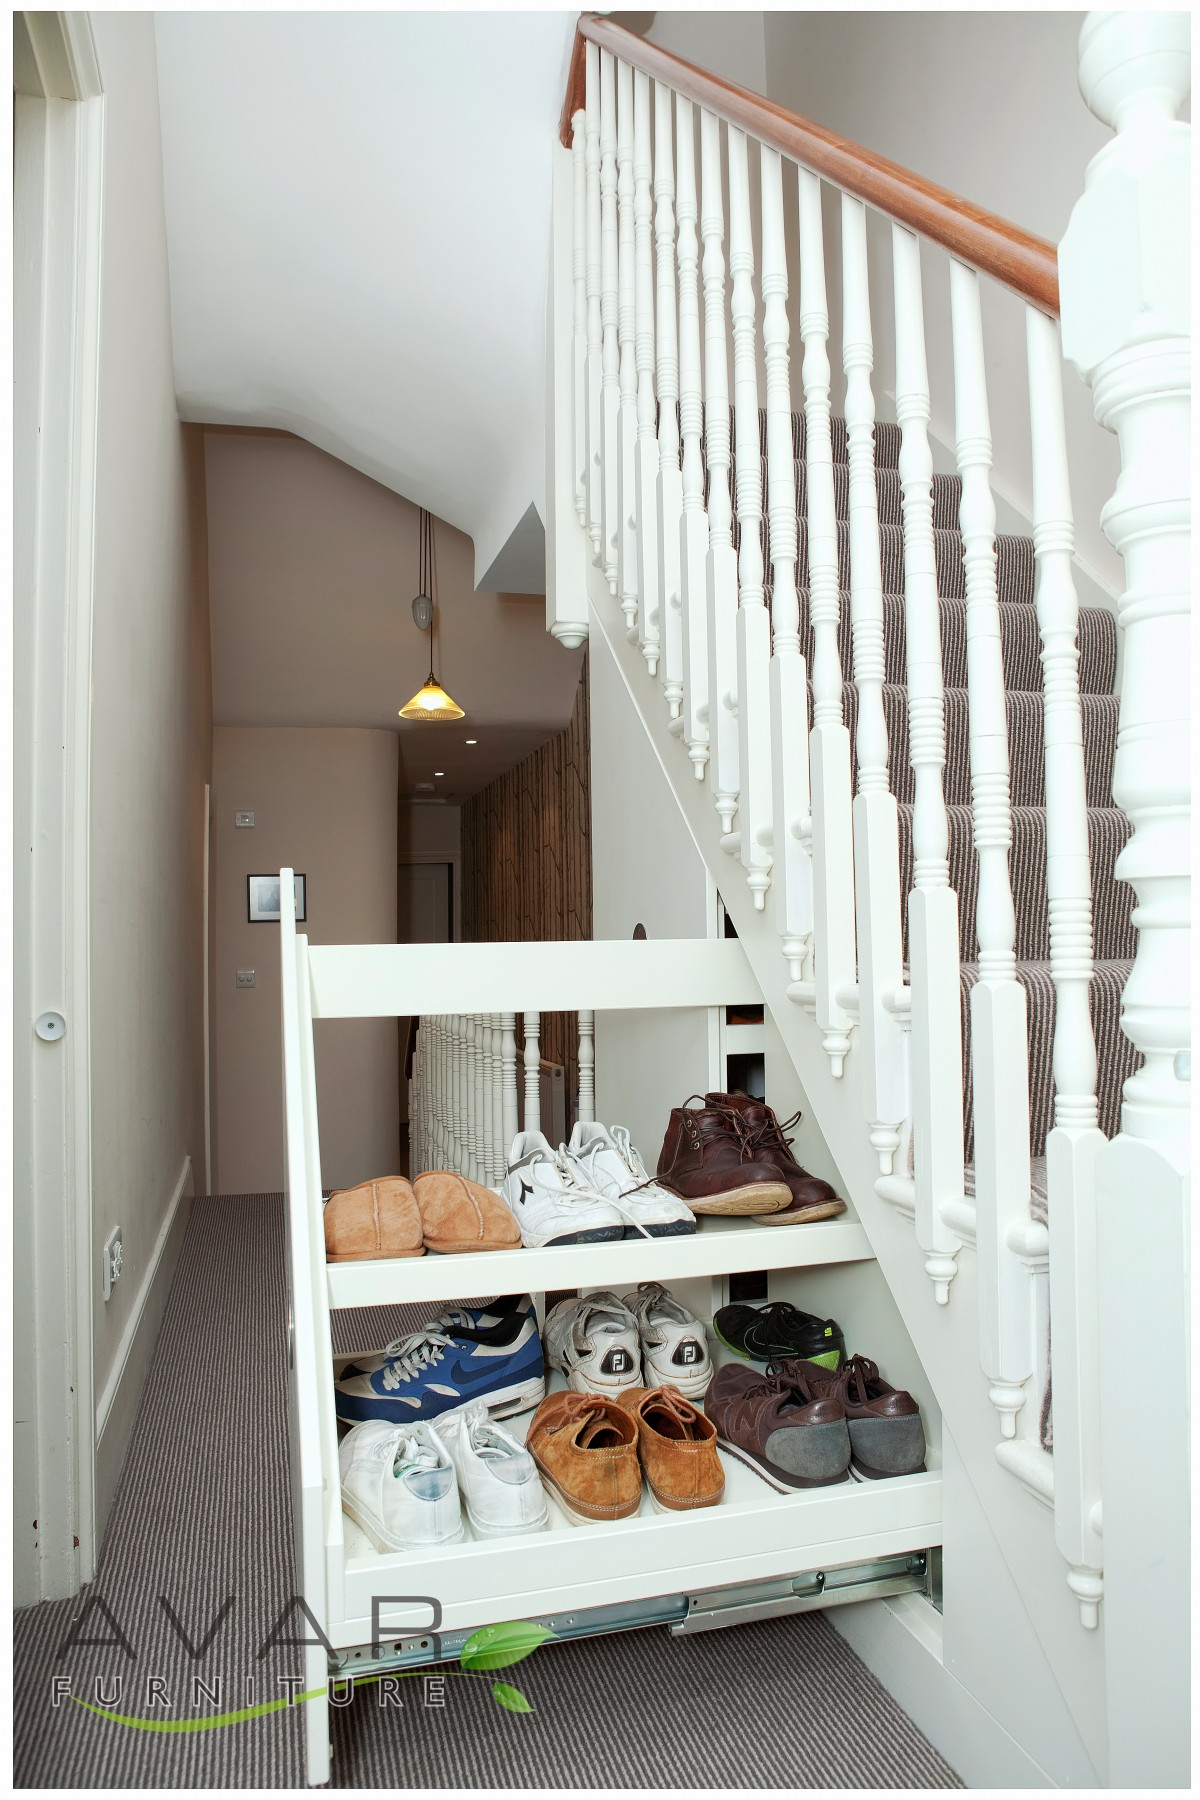 Under Stairs Drawers ƸӜƷ under stairs storage ideas / gallery 14 | north london, uk